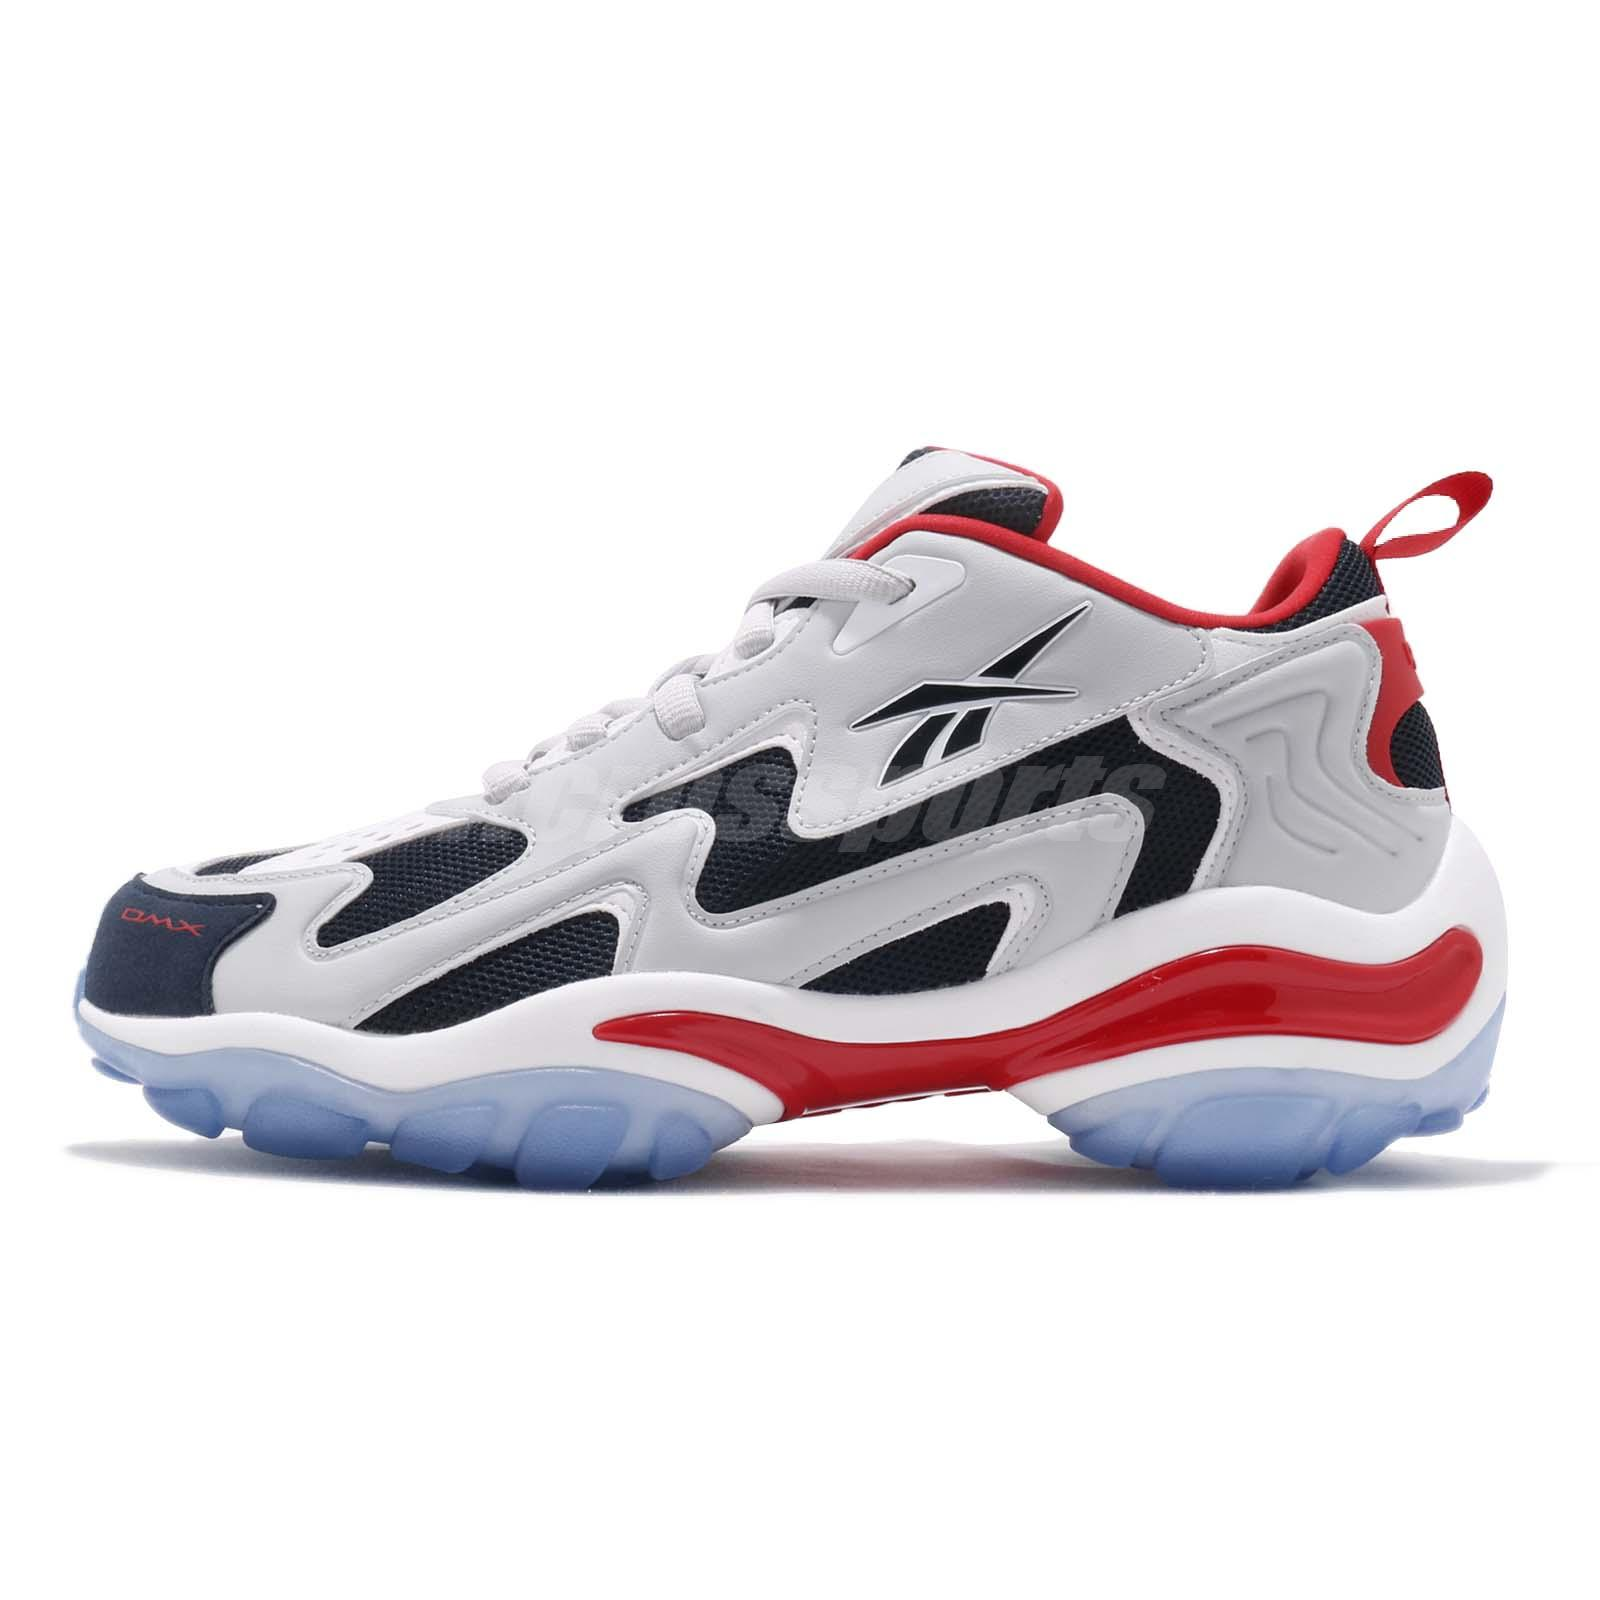 Reebok DMX Series 1600 Skull Grey Navy Red White Men Running Shoe Sneaker  CN7736 b03d71679